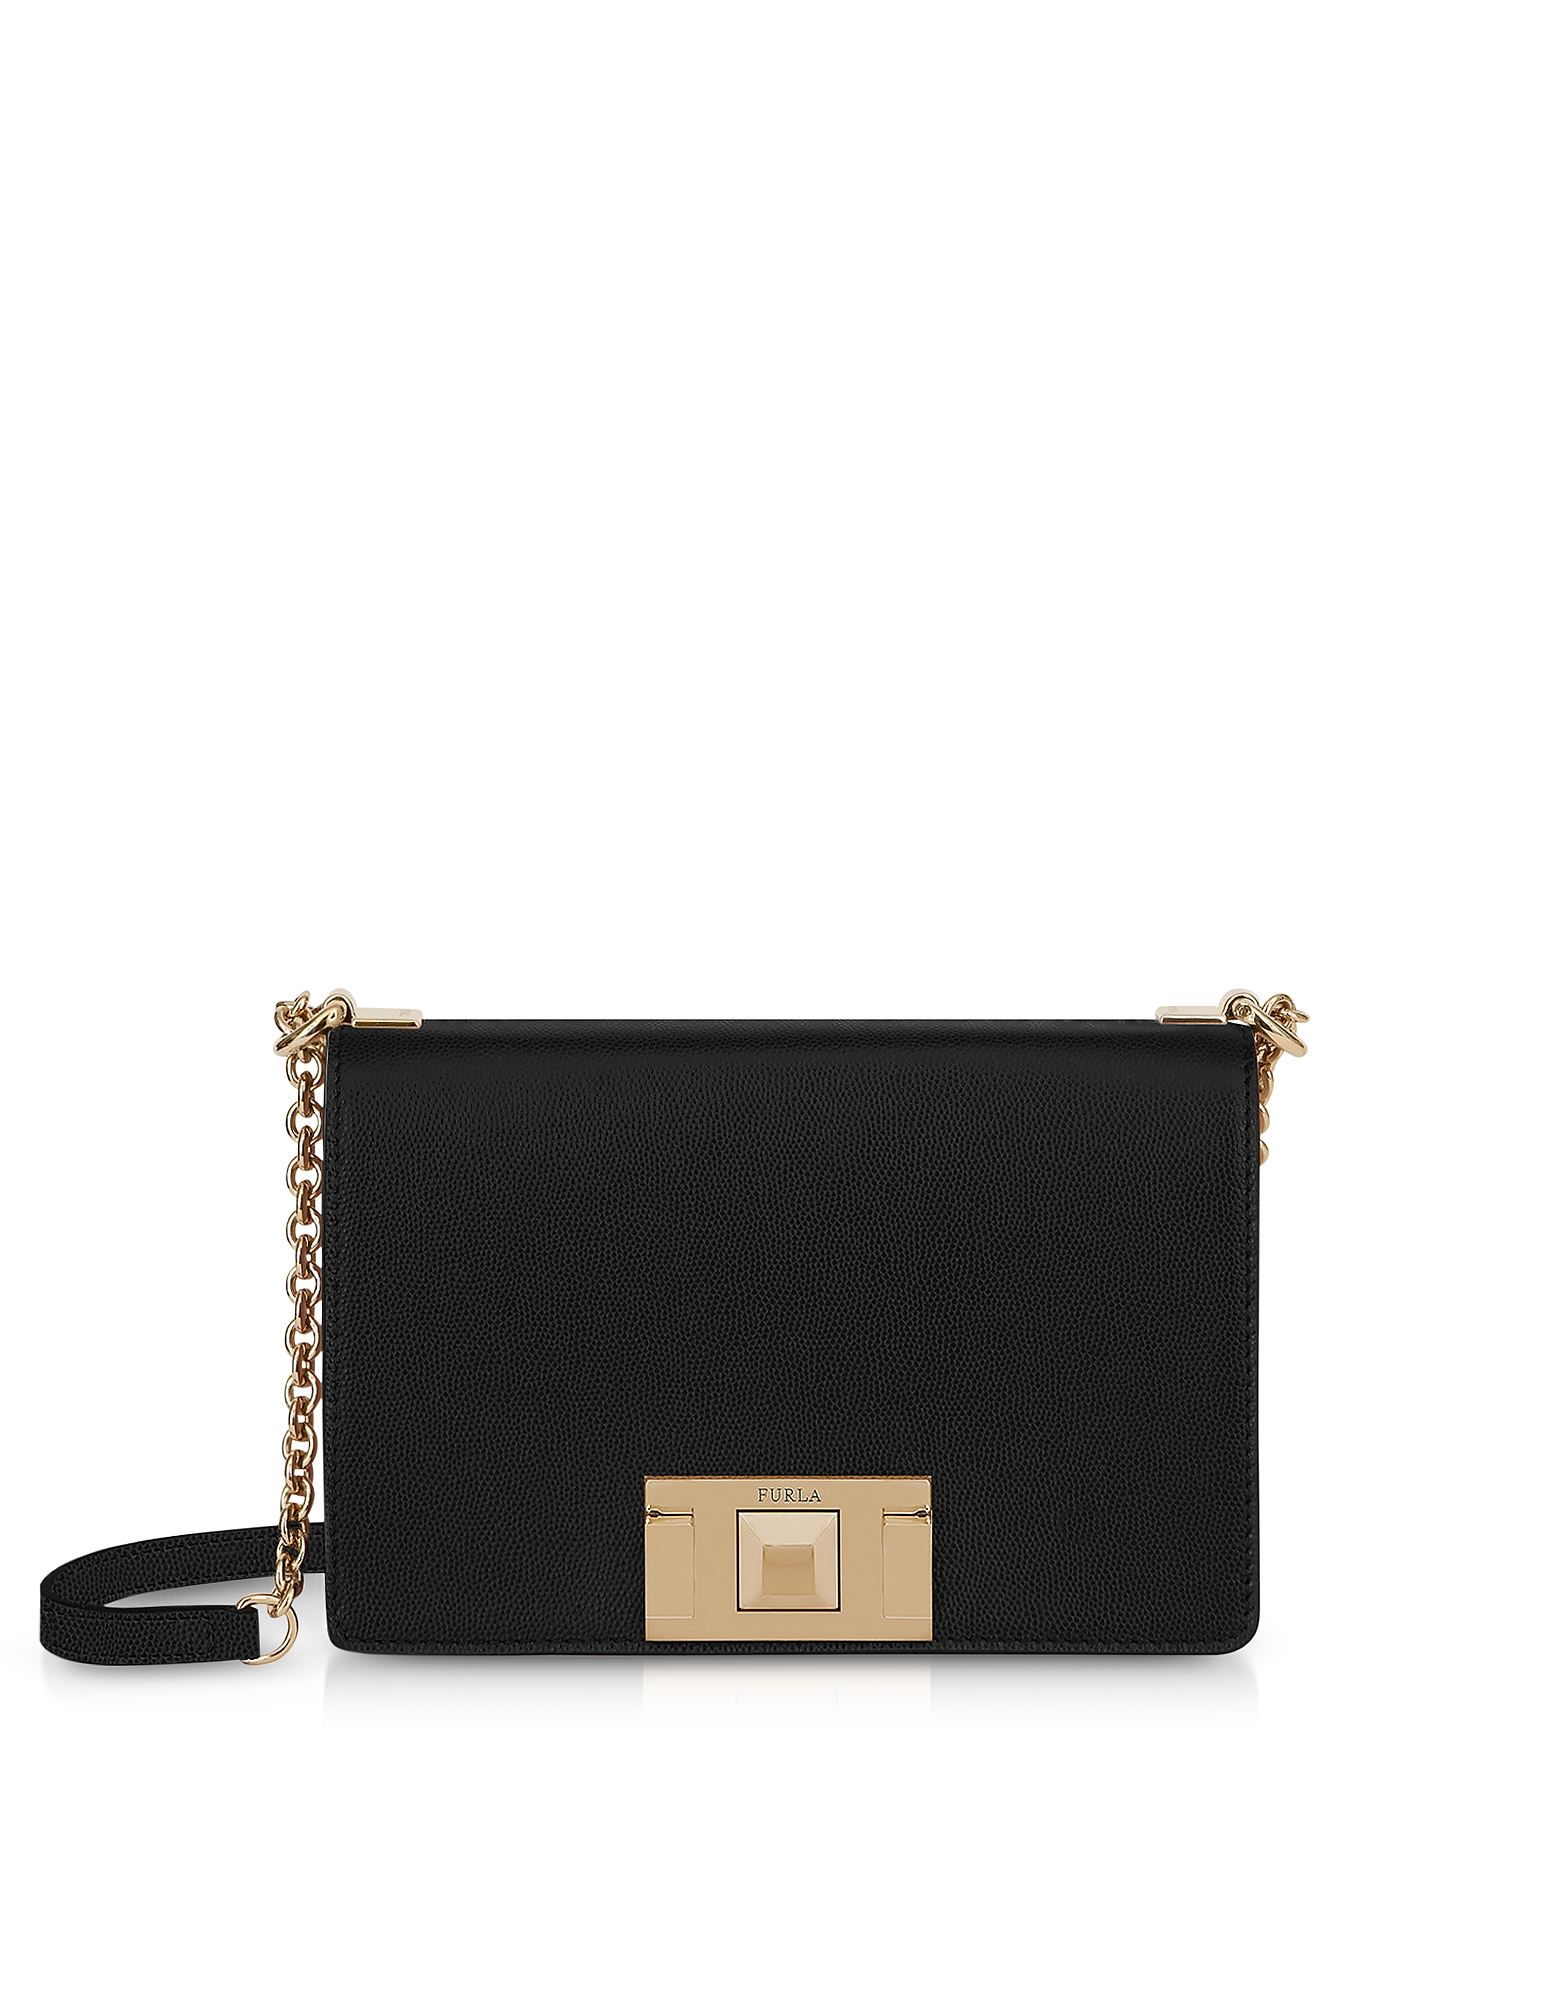 Furla Handbags, Mimì Mini Crossbody Bag